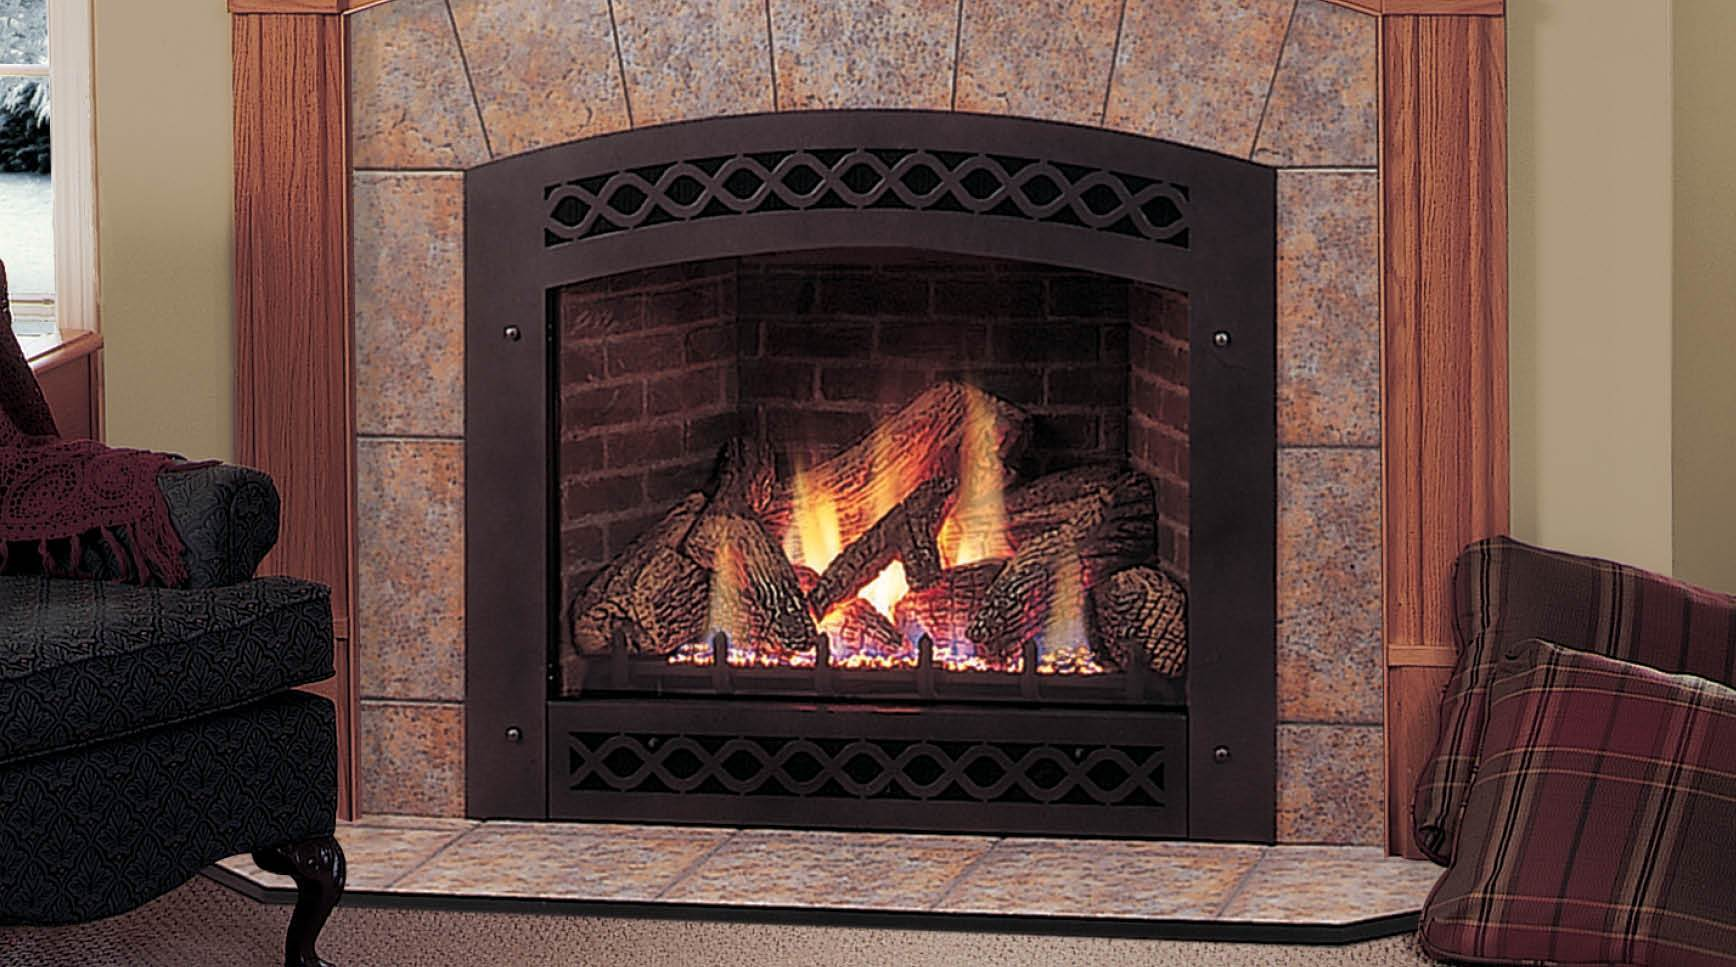 Gas Fireplace Insert - Warming Trends